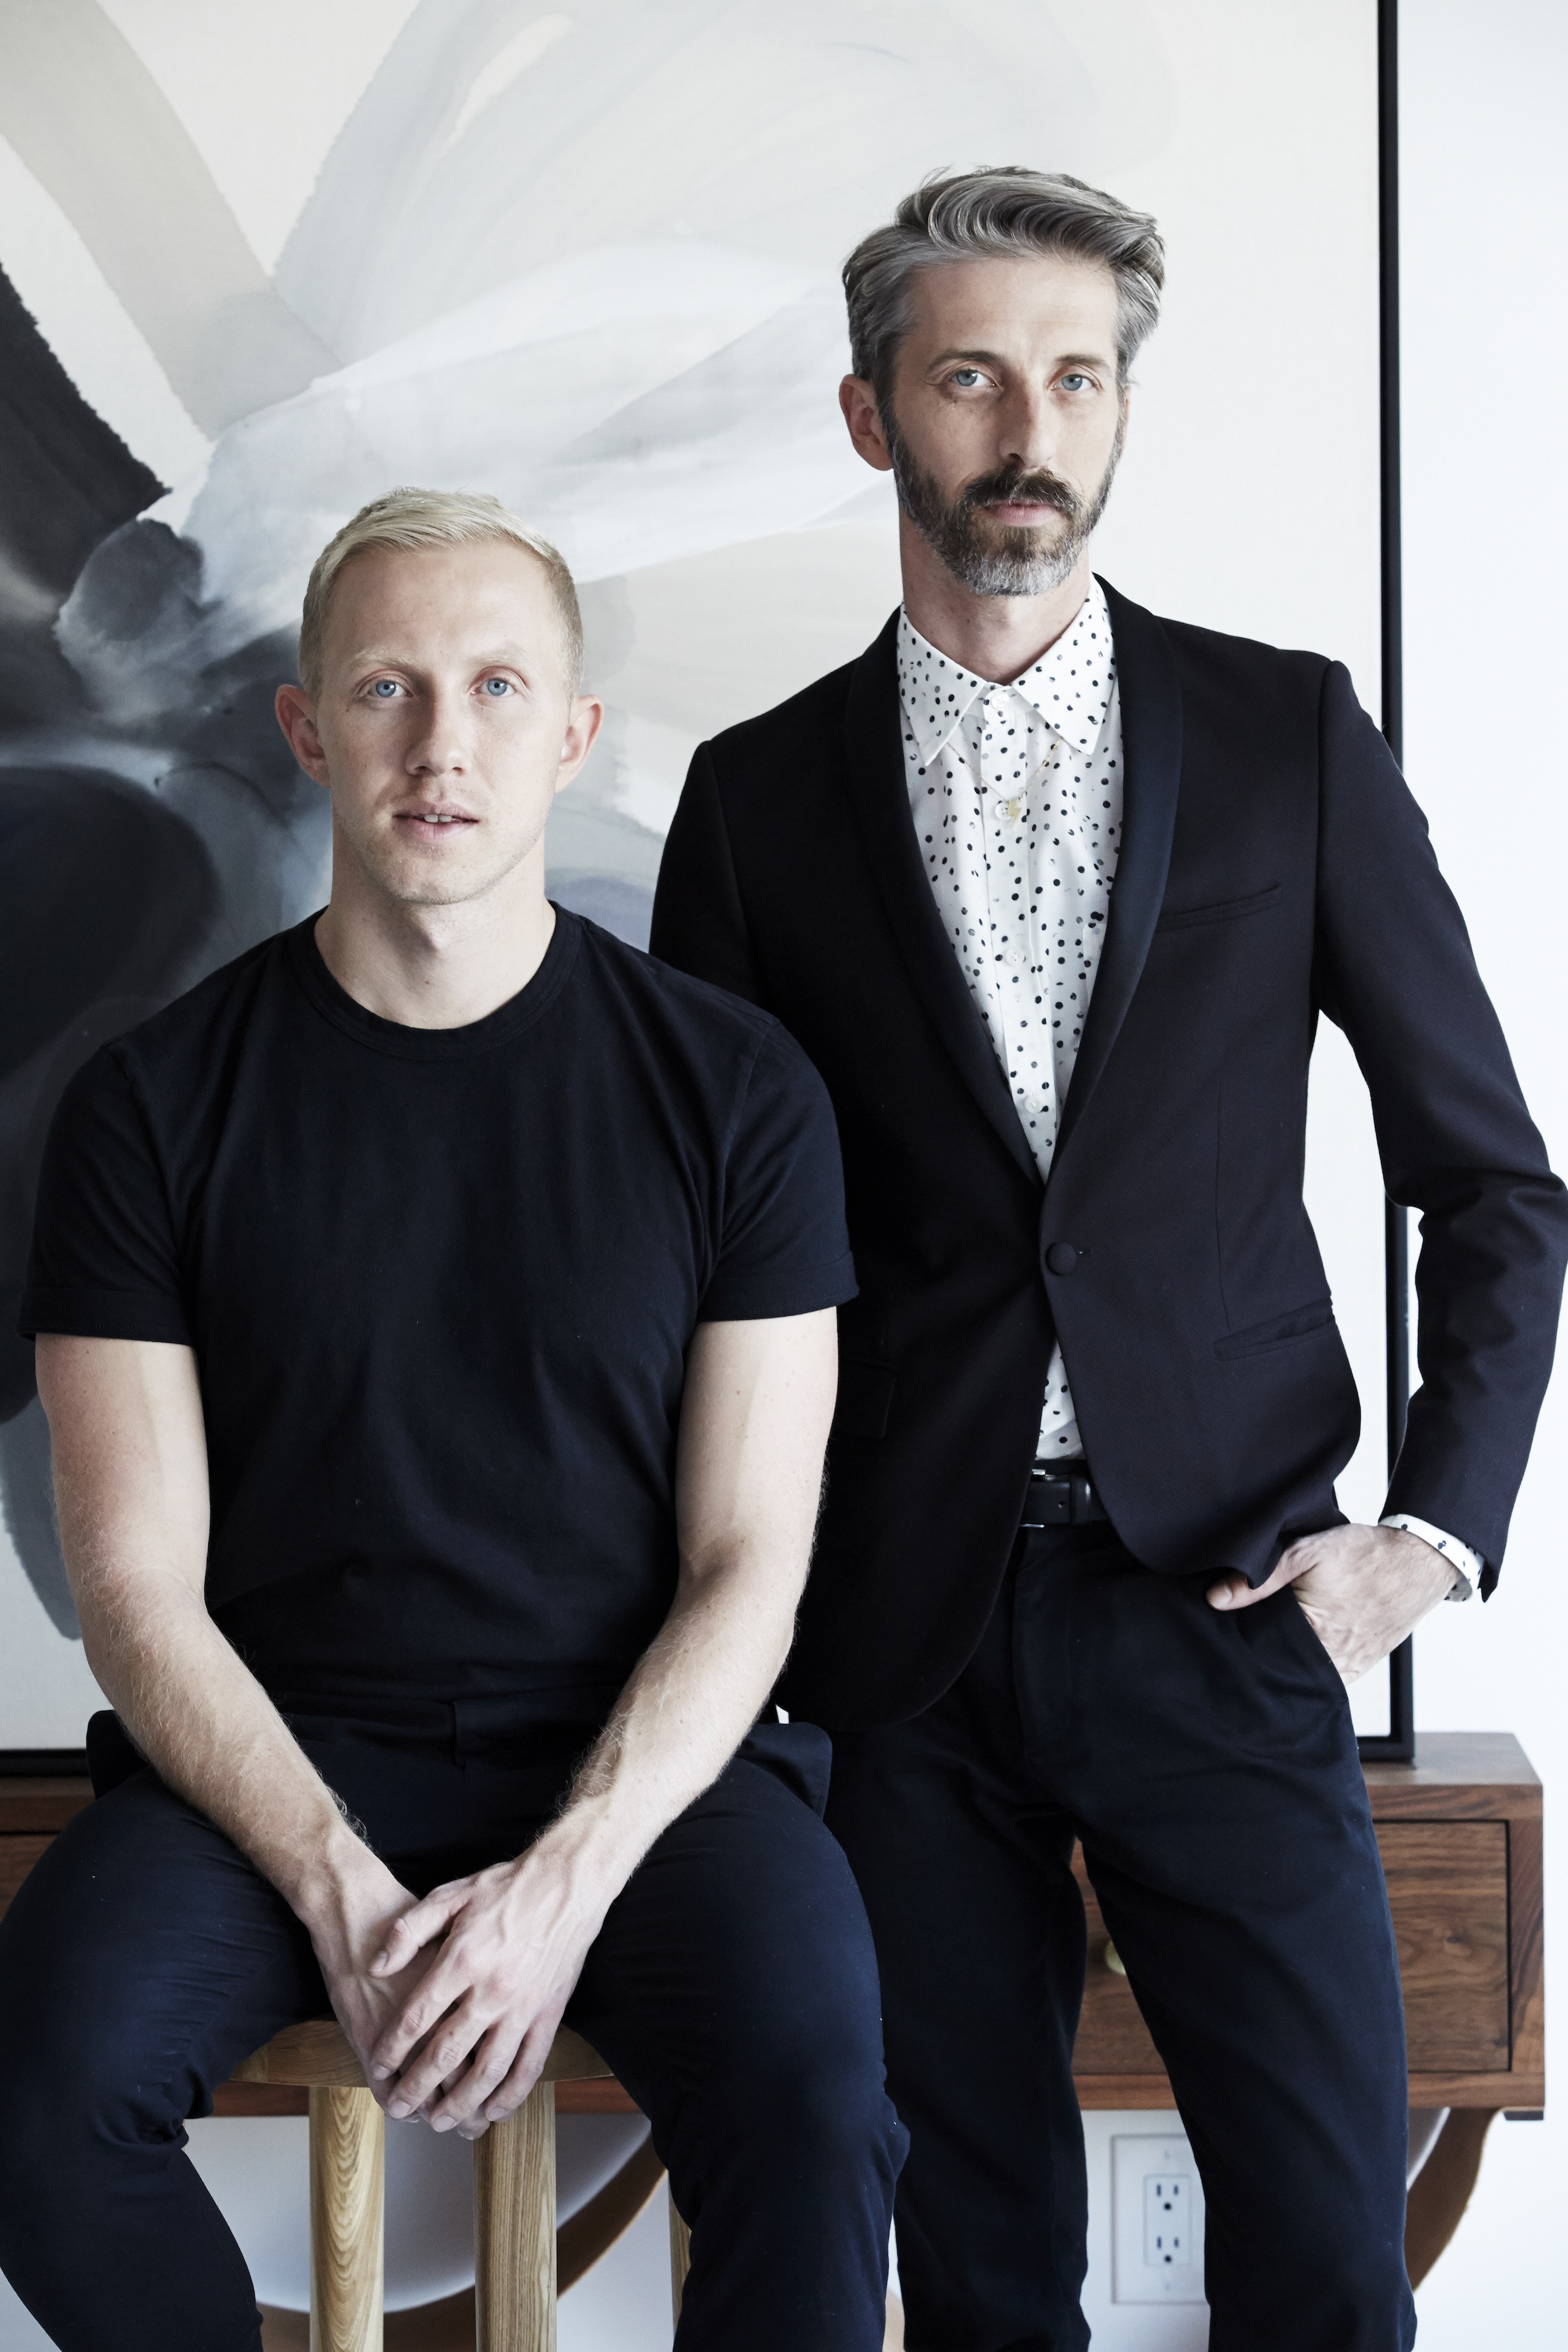 Brandon Quattrone and Mat Sanders, Co-Founders of the celebrity design firm,  Consort .